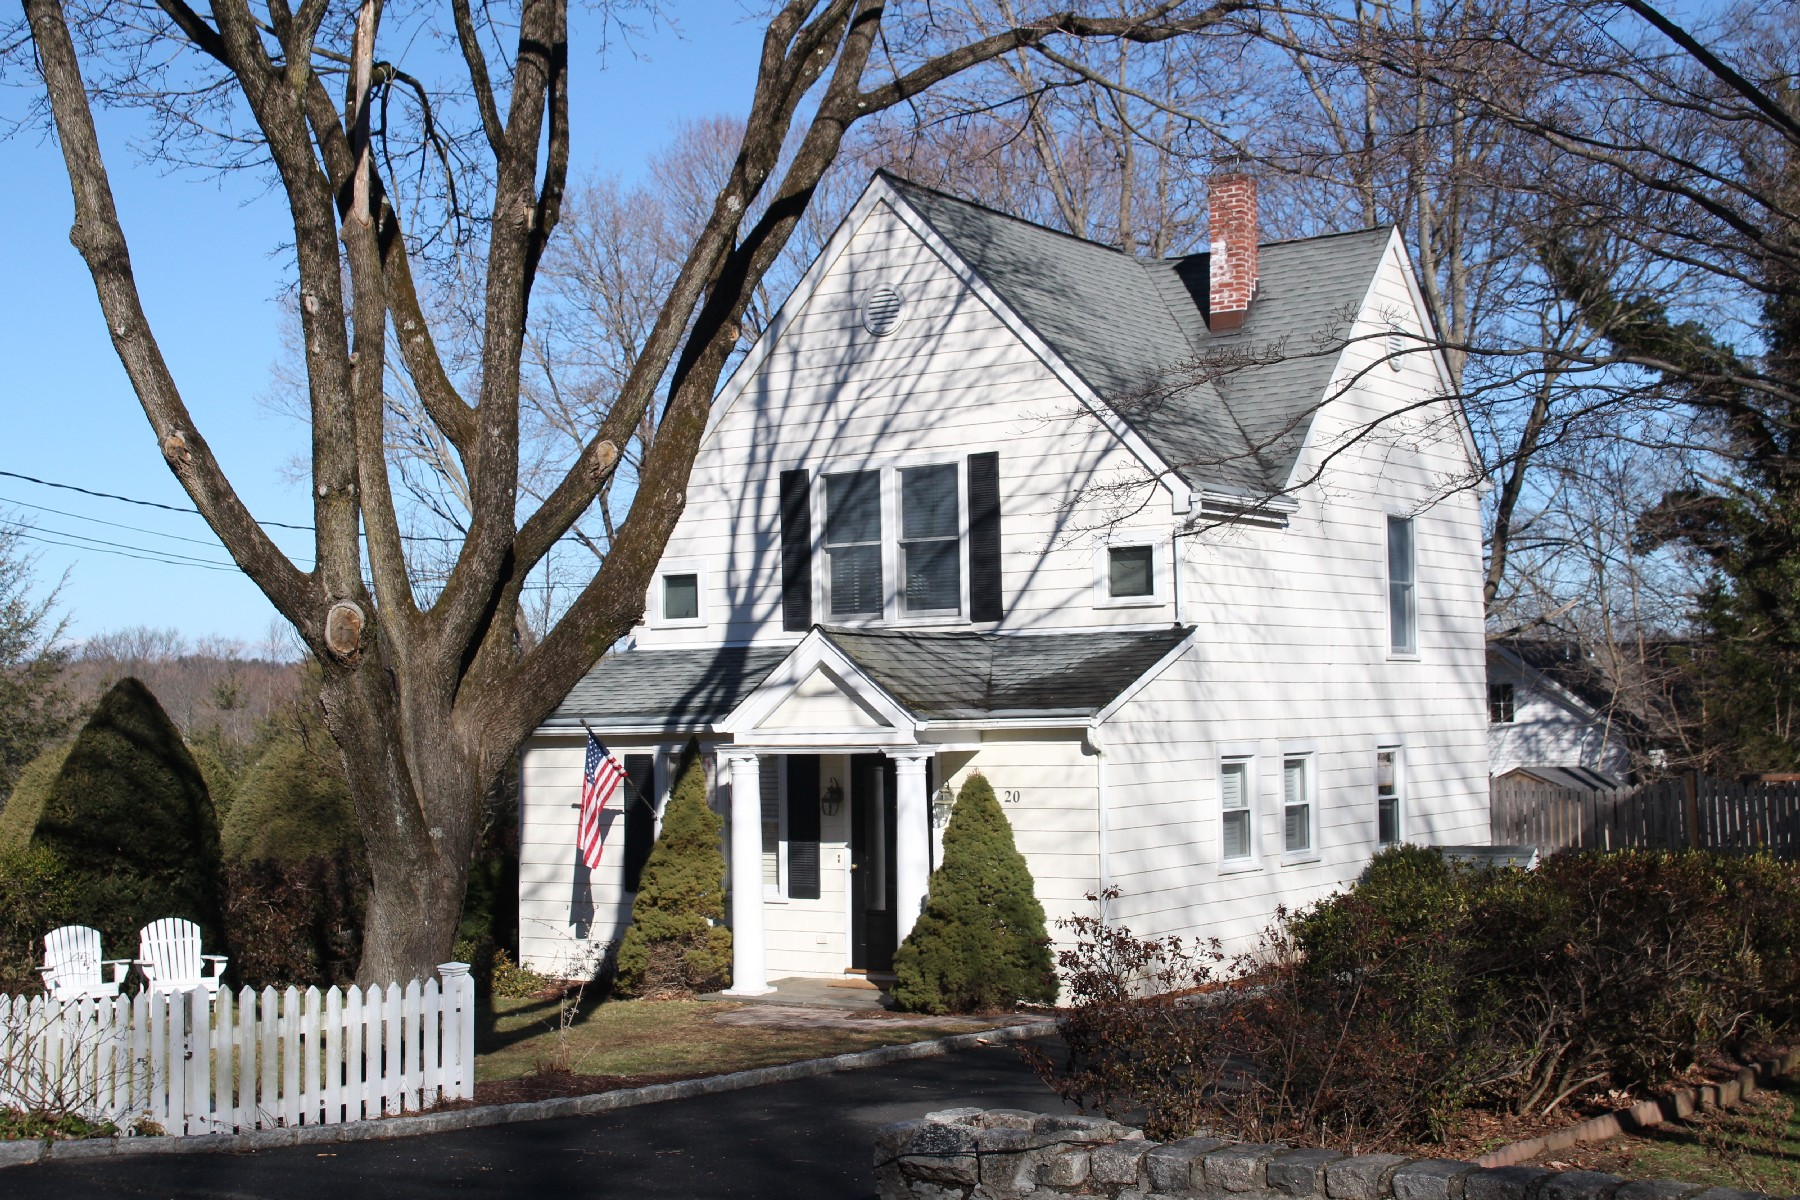 Single Family Home for Sale at Move Right In 20 Ridgeview Avenue Darien, Connecticut, 06820 United States